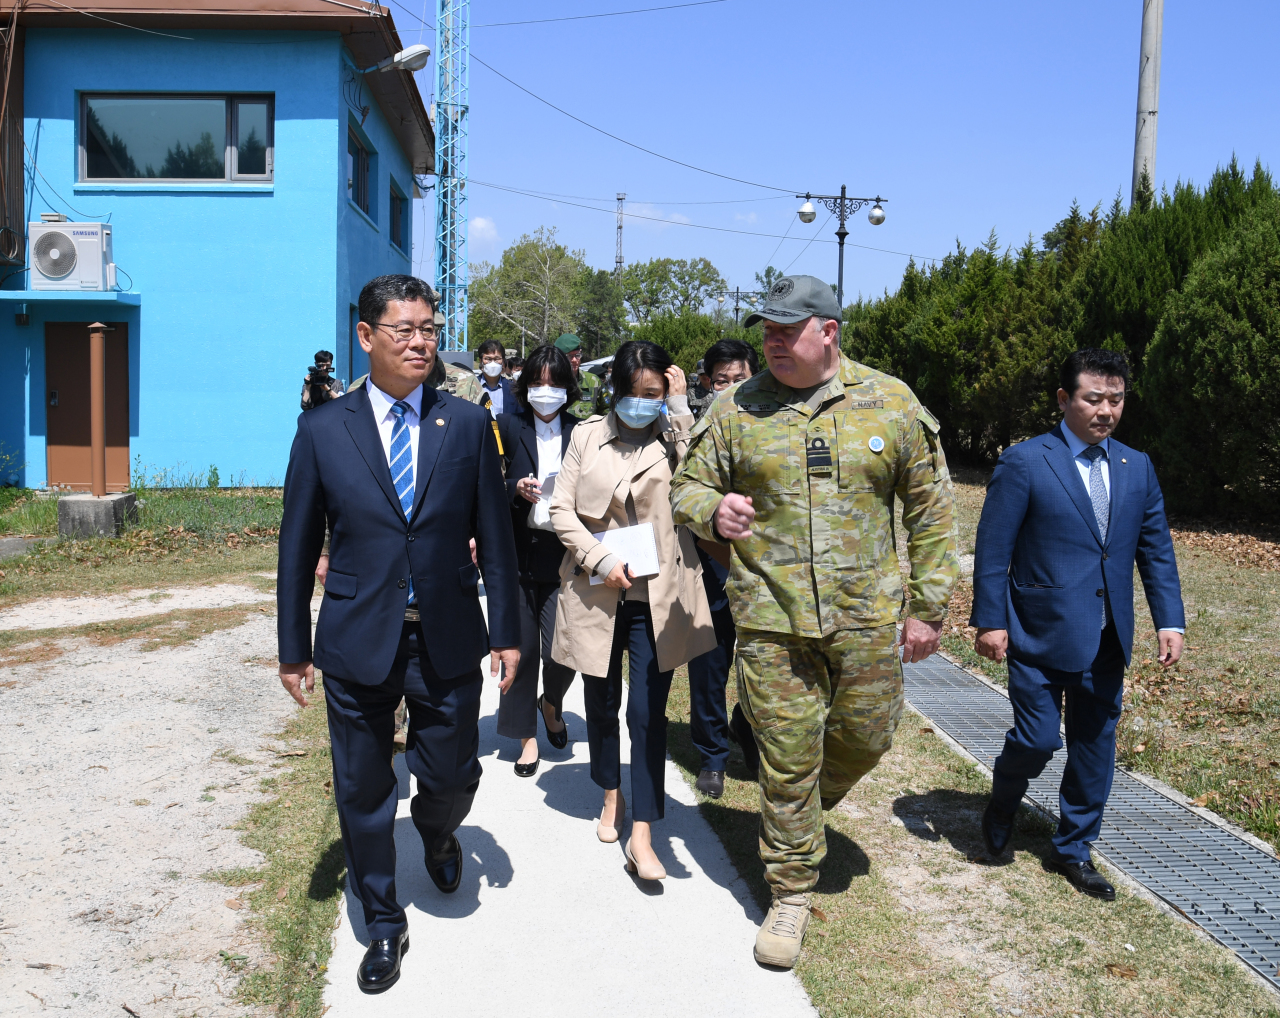 Unification Minister Kim Yeon-chul (left) inspects tourism routes at the truce village of Panmunjom in Paju, Gyeonggi, during a visit to the demilitarized zone earlier this month. (Yonhap)